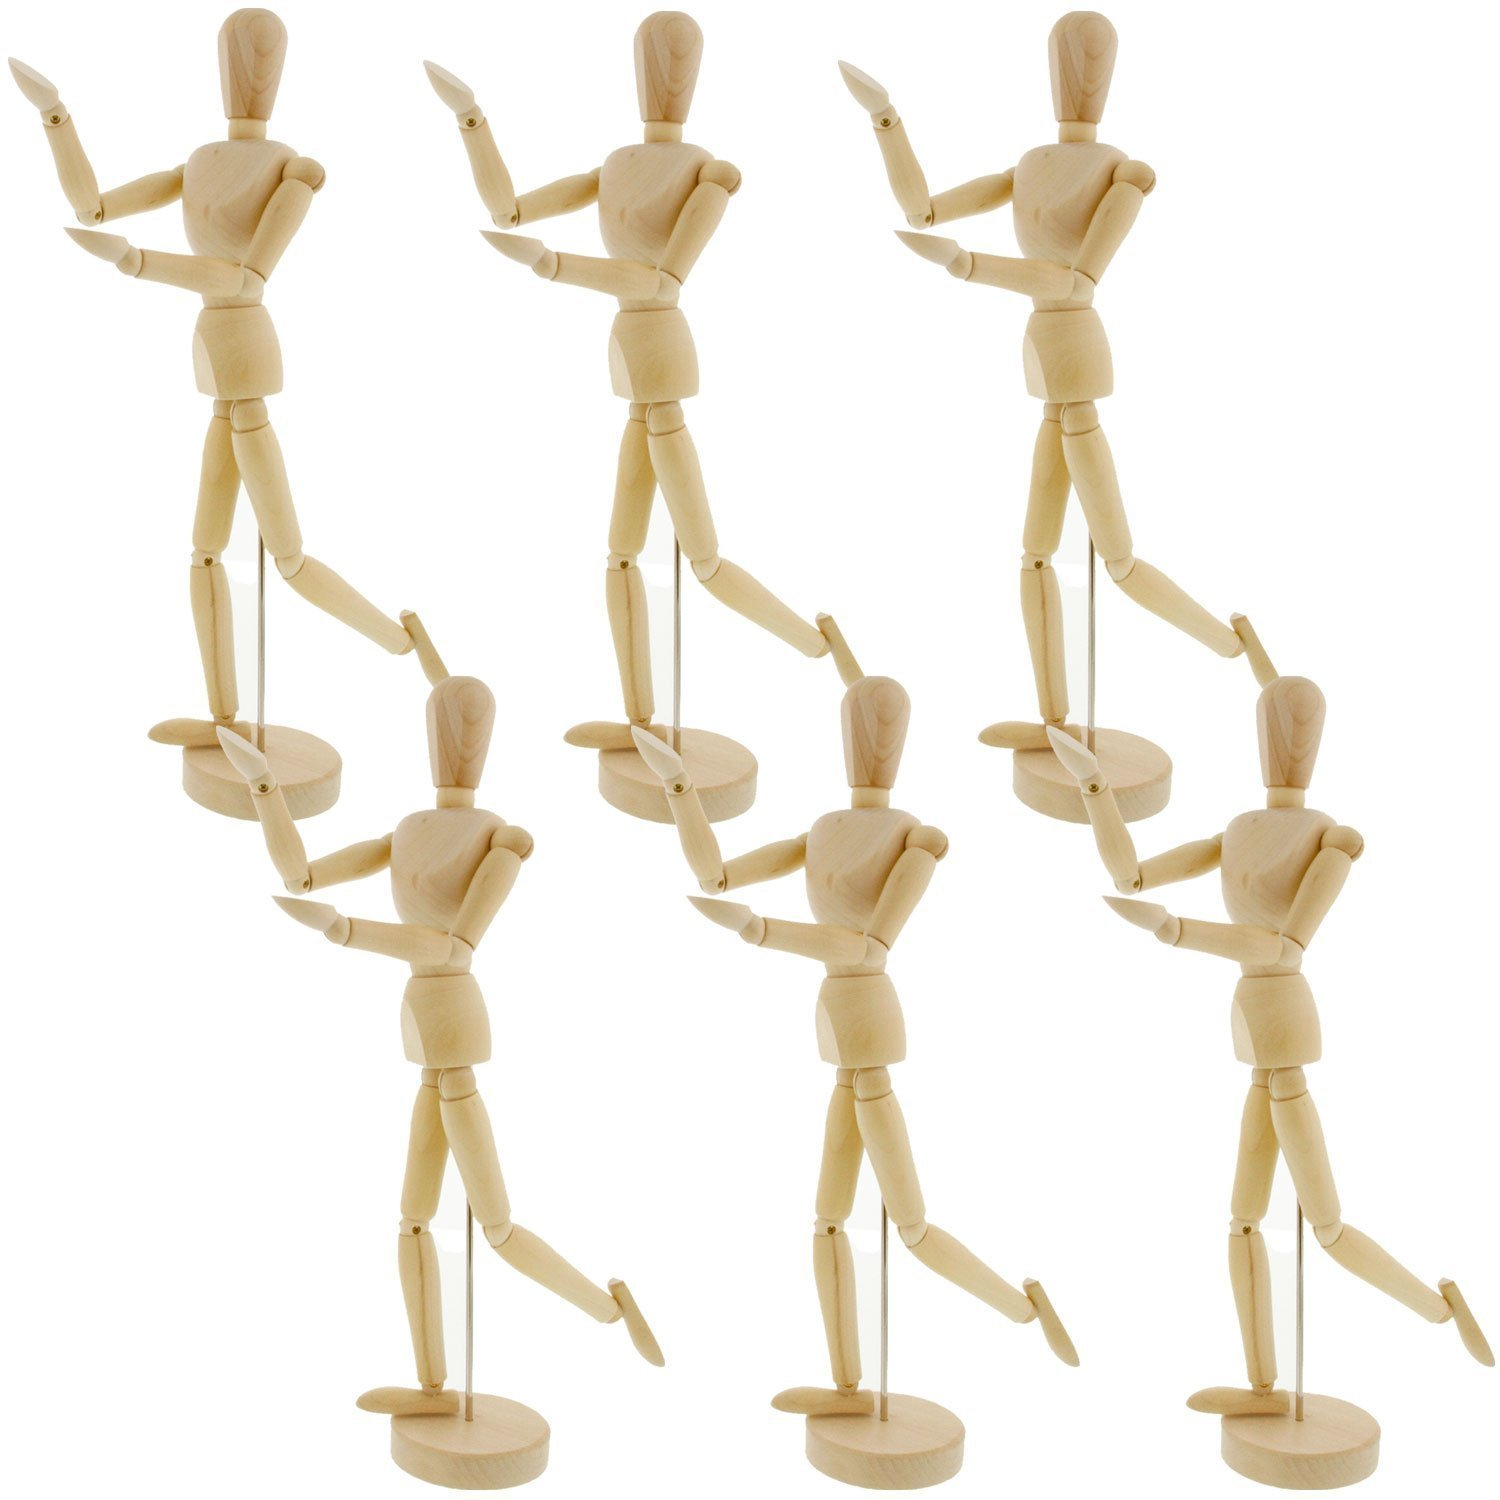 "Pack of 6 US Art Supply Wood 16"" Artist Drawing Manikin A..."